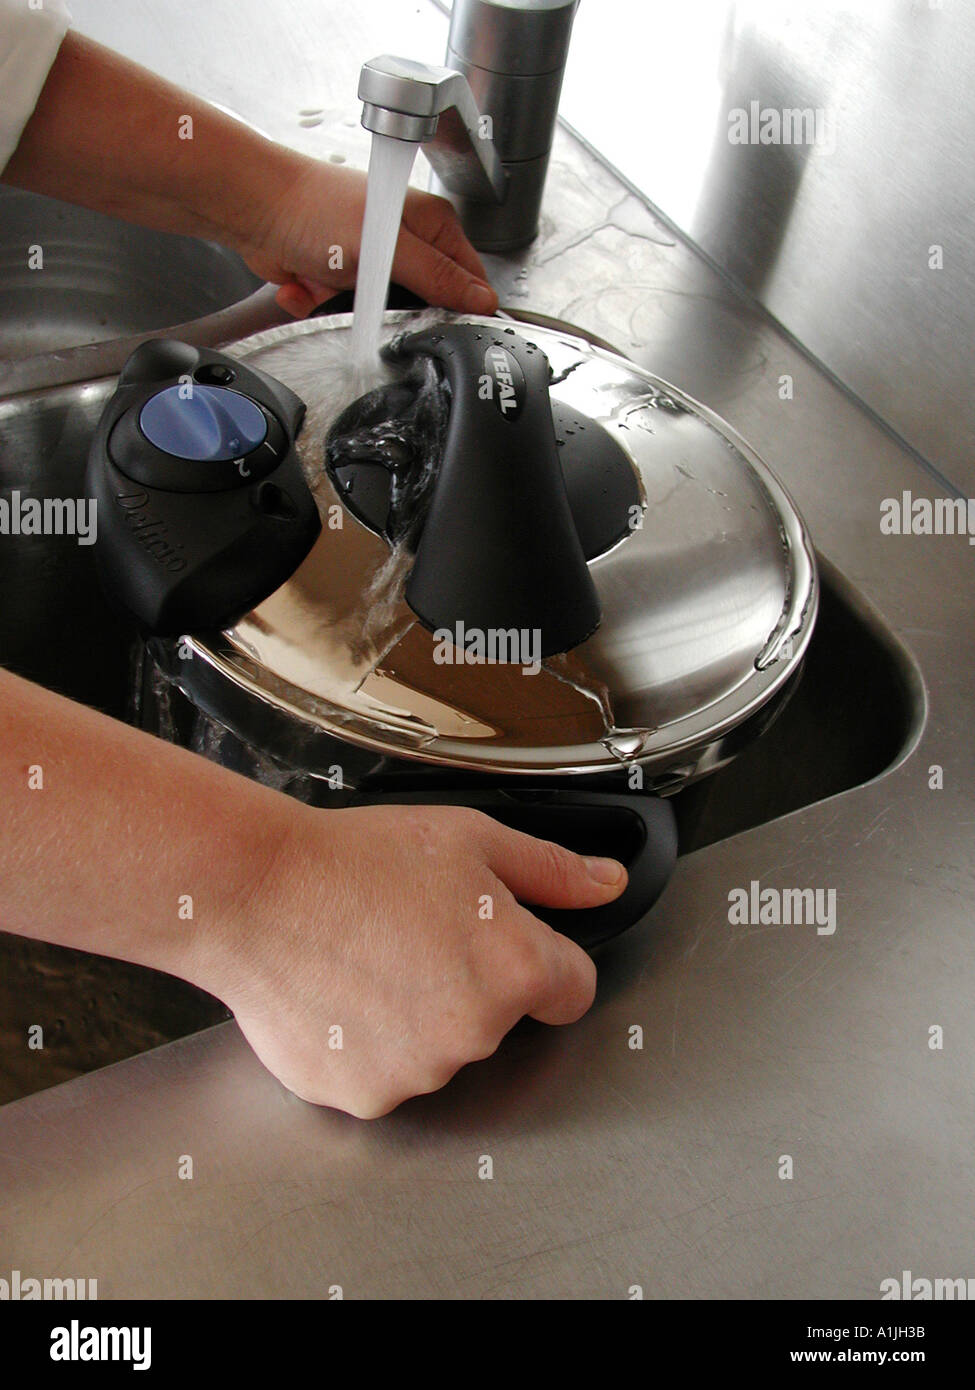 Using a pressure cooker runnung under tap to cool and reduce pressure - Stock Image